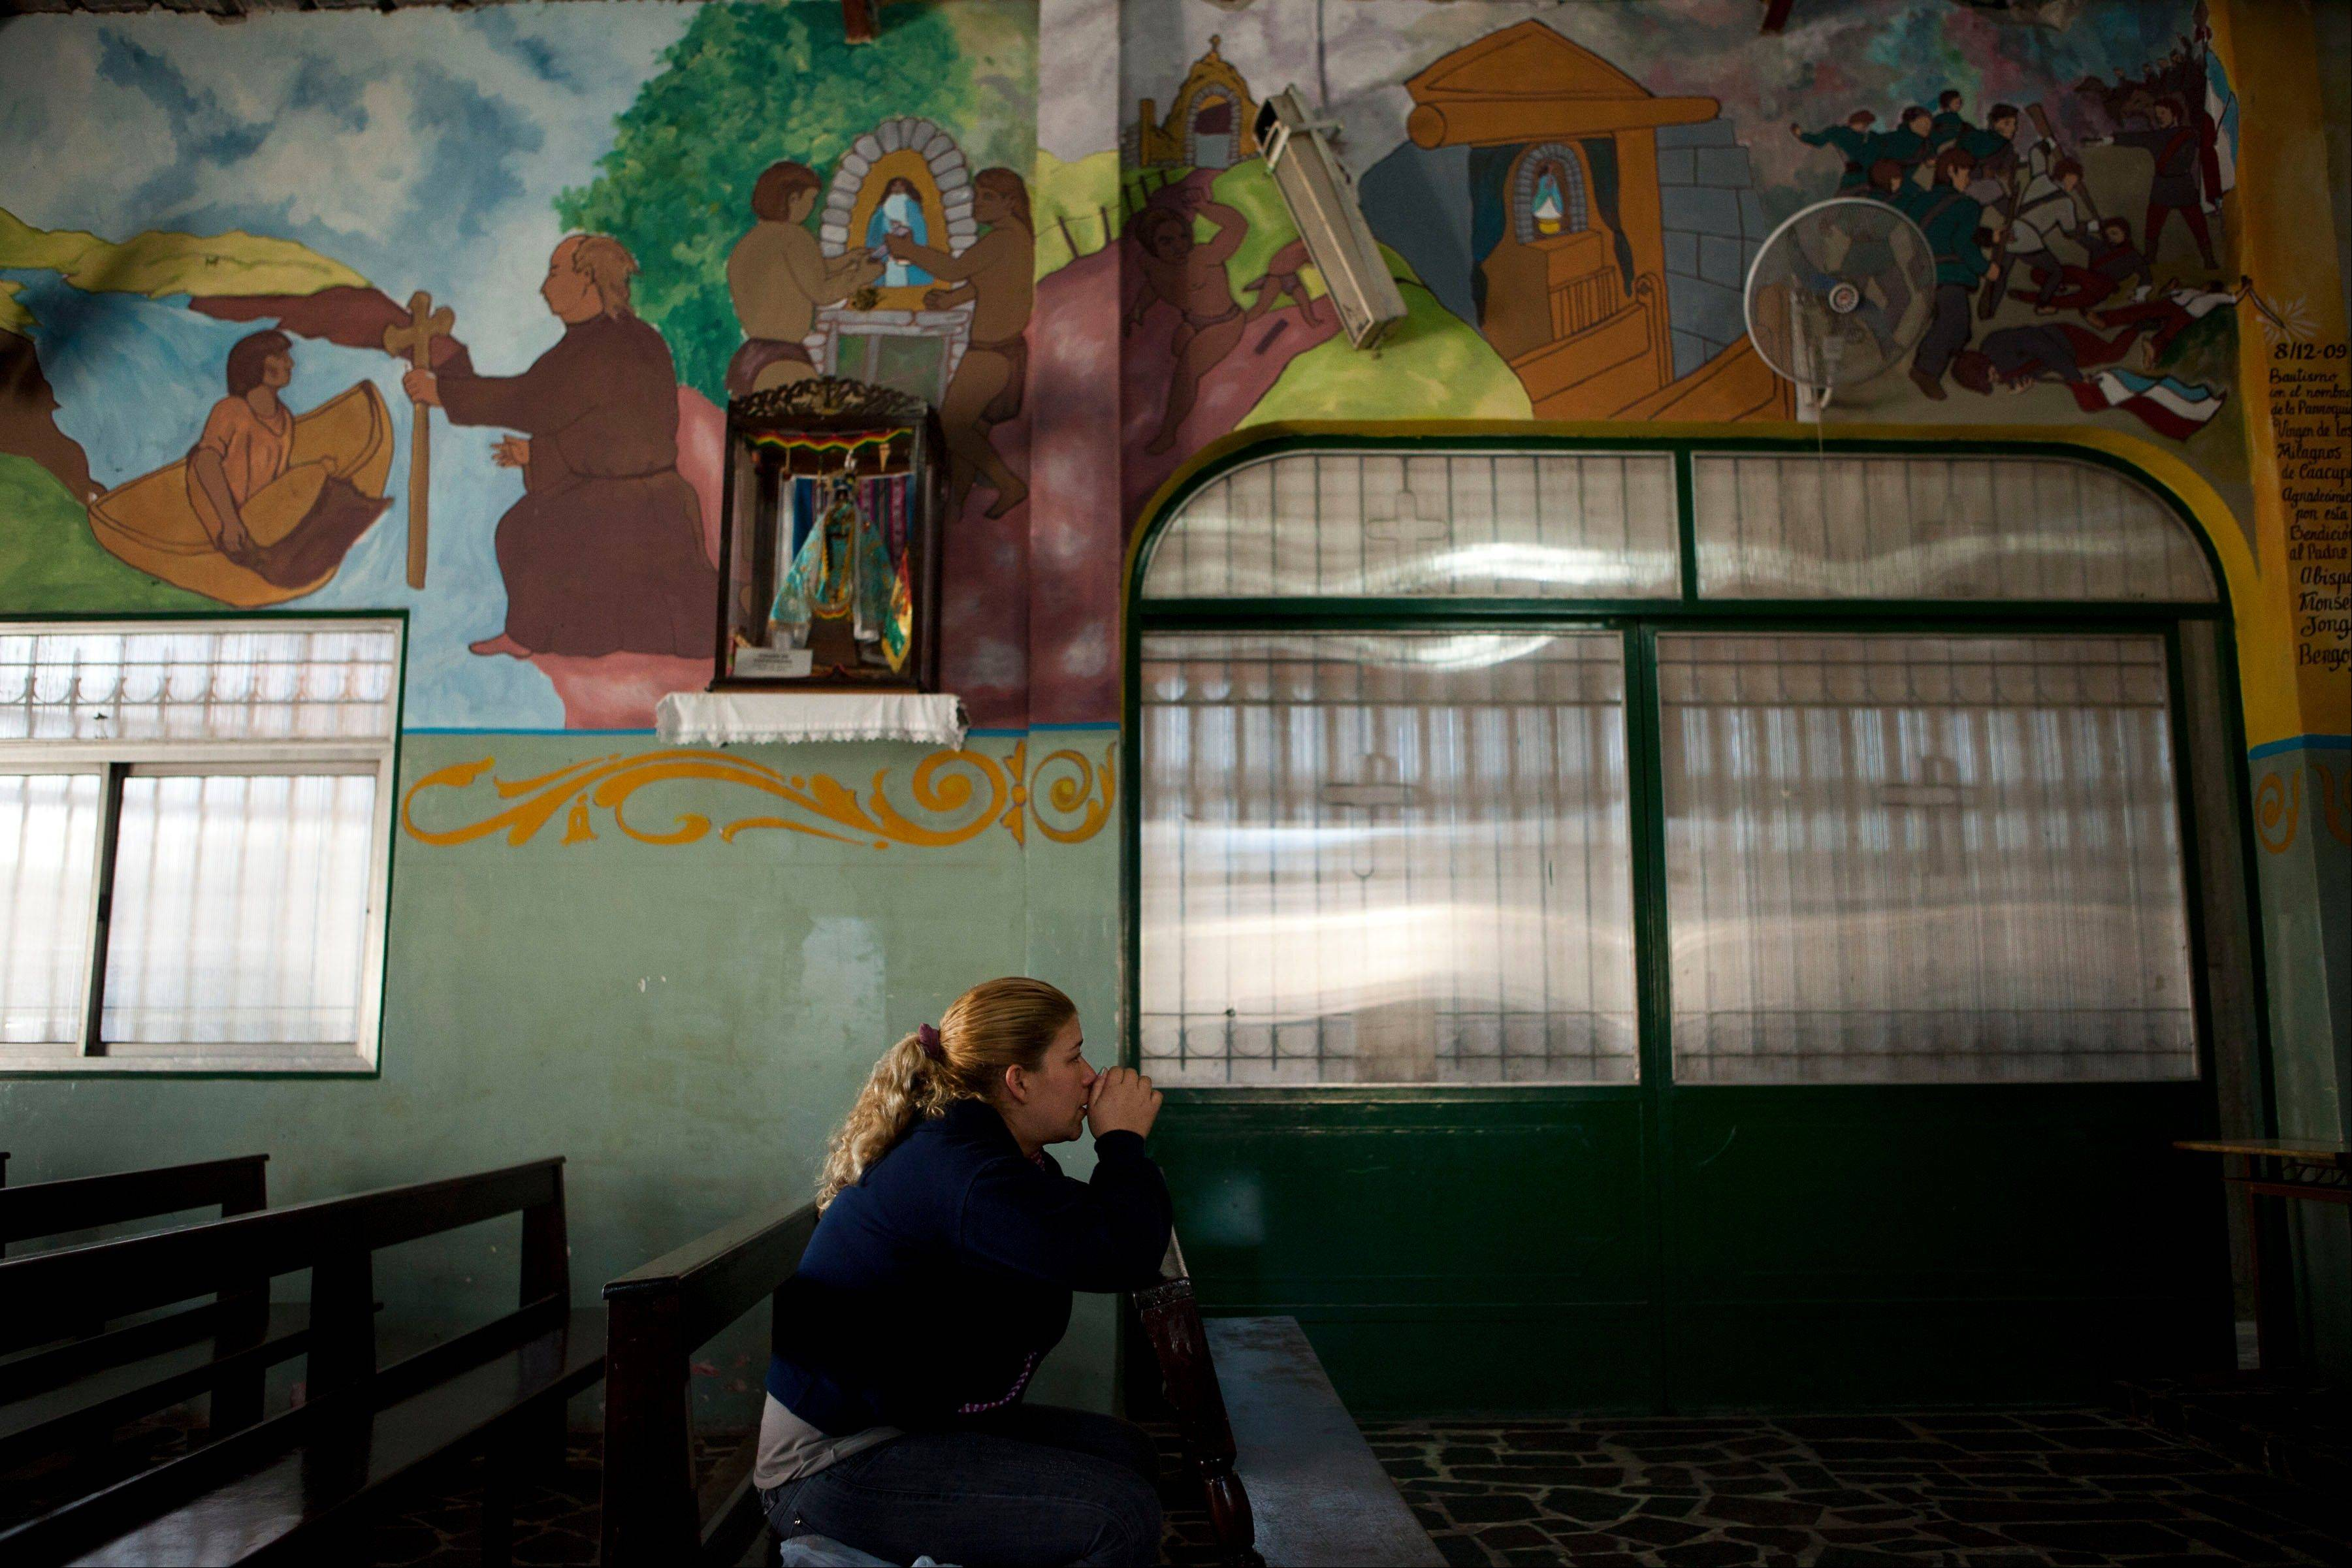 A woman prays inside the Virgin of Caacupe Church in the Villa 21-24 shantytown in Buenos Aires, Argentina. Residents here proudly recall how the Buenos Aires Archbishop Jorge Mario Bergoglio would walk in arrive on a bus and walk through the mud to reach the young members of the slum's church. How he sponsored marathons and carpentry classes, consoled single mothers, blessed the local chapel and washed the feet of recovering drug addicts. How he became one of them.